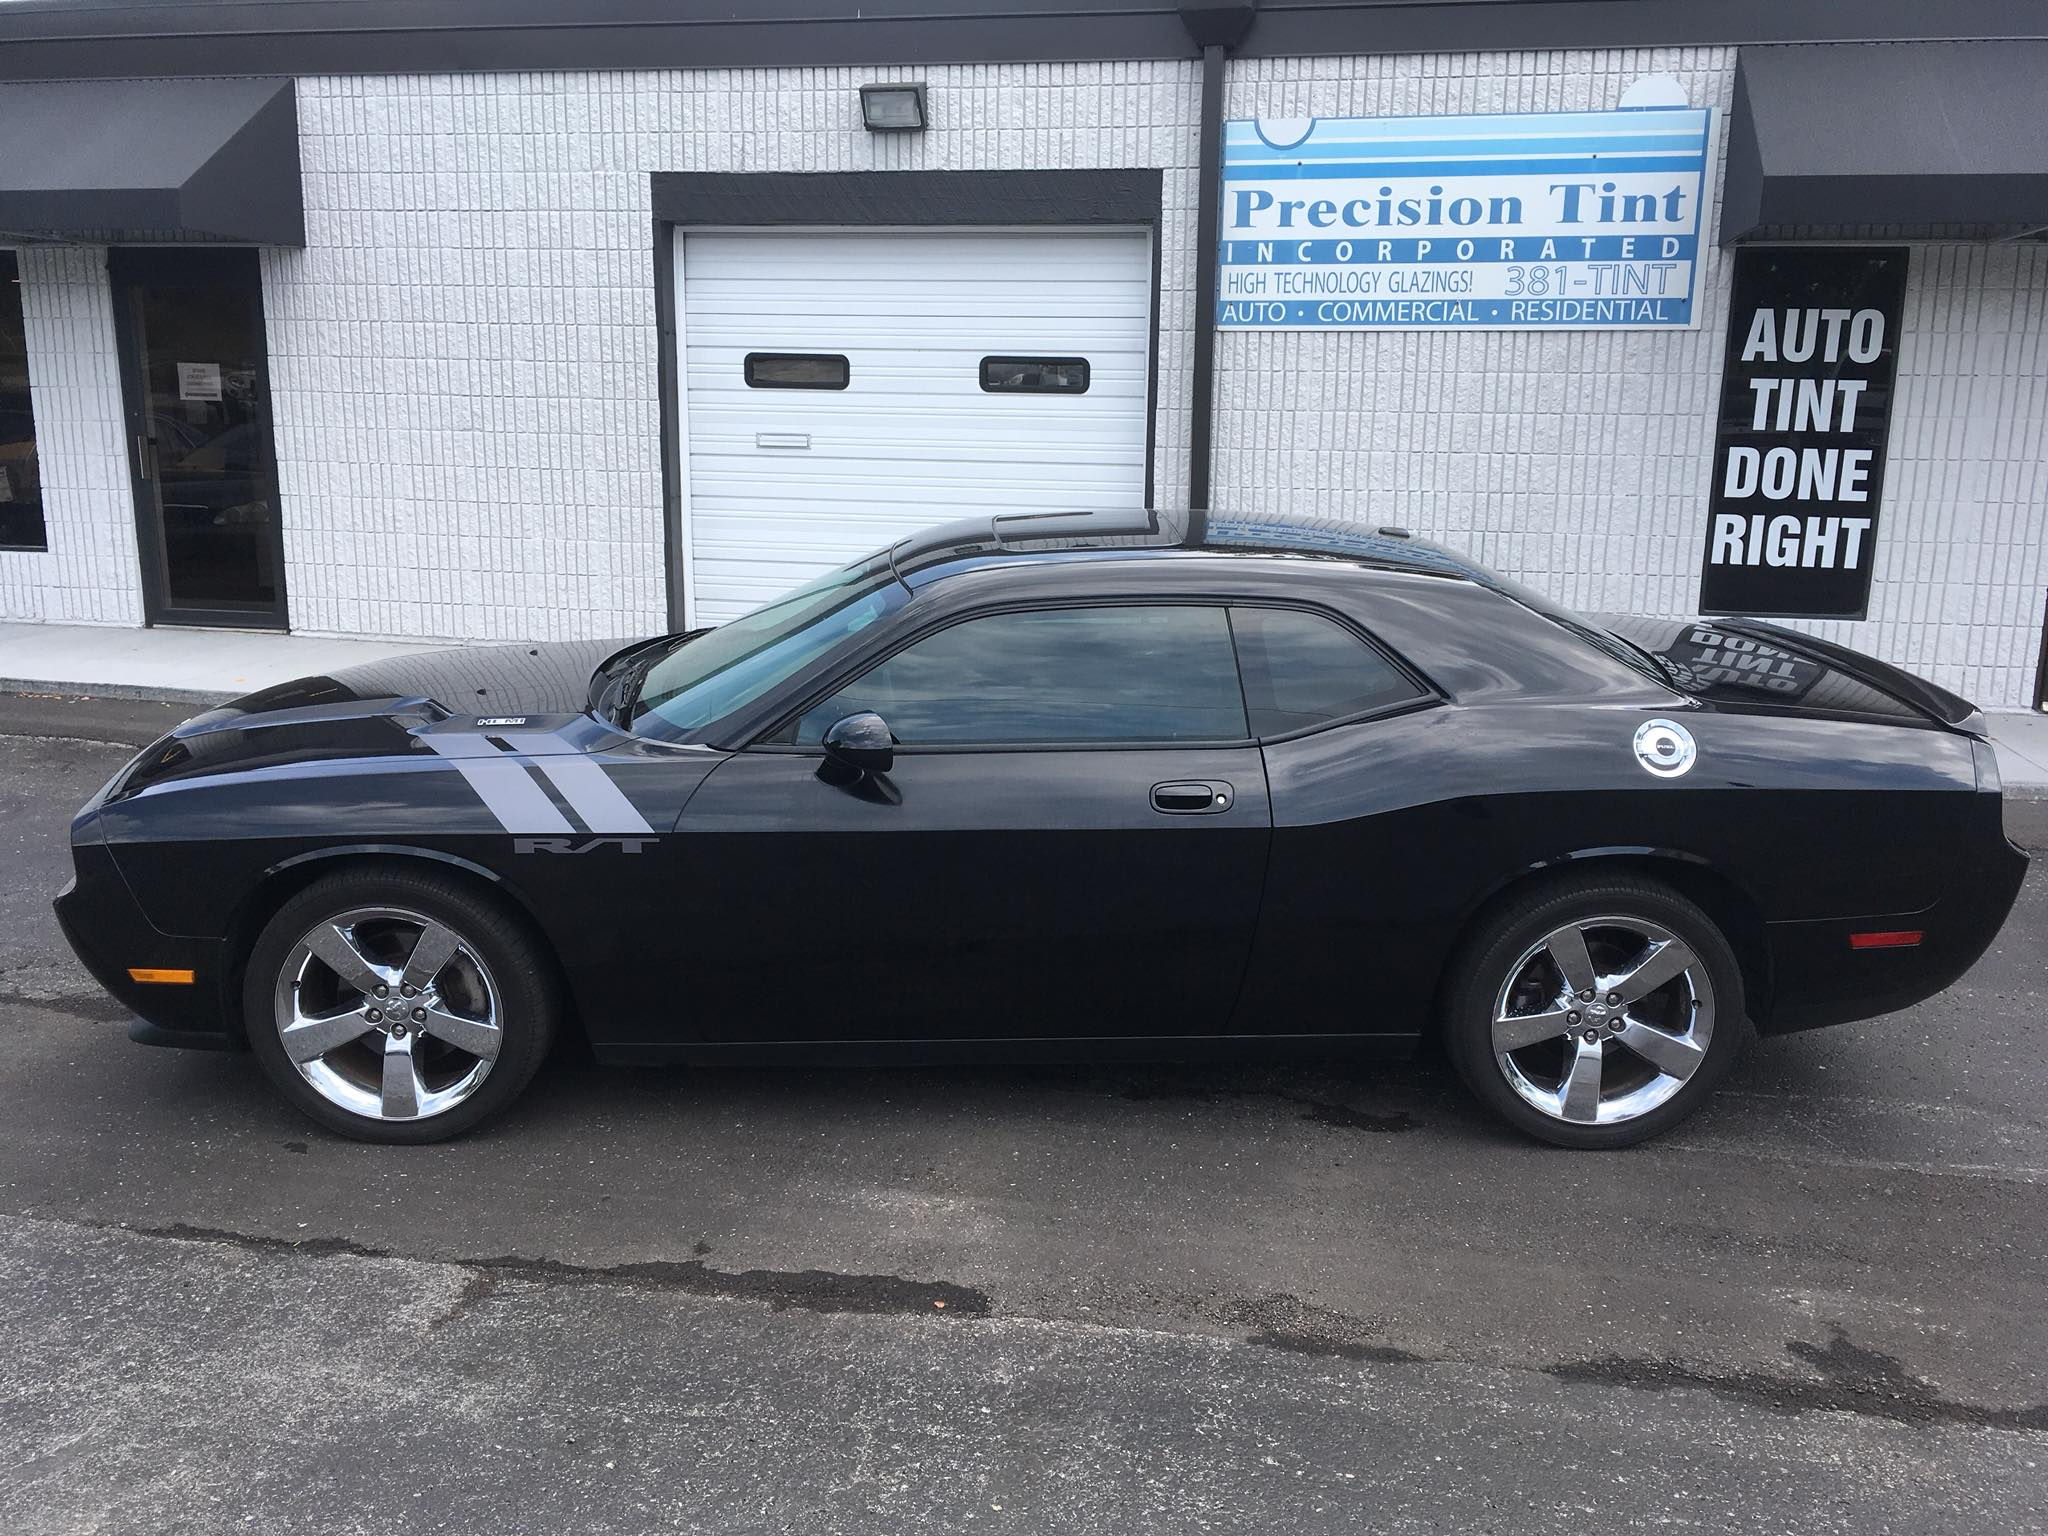 precision tint automotive window tinting kansas city dodge challenger